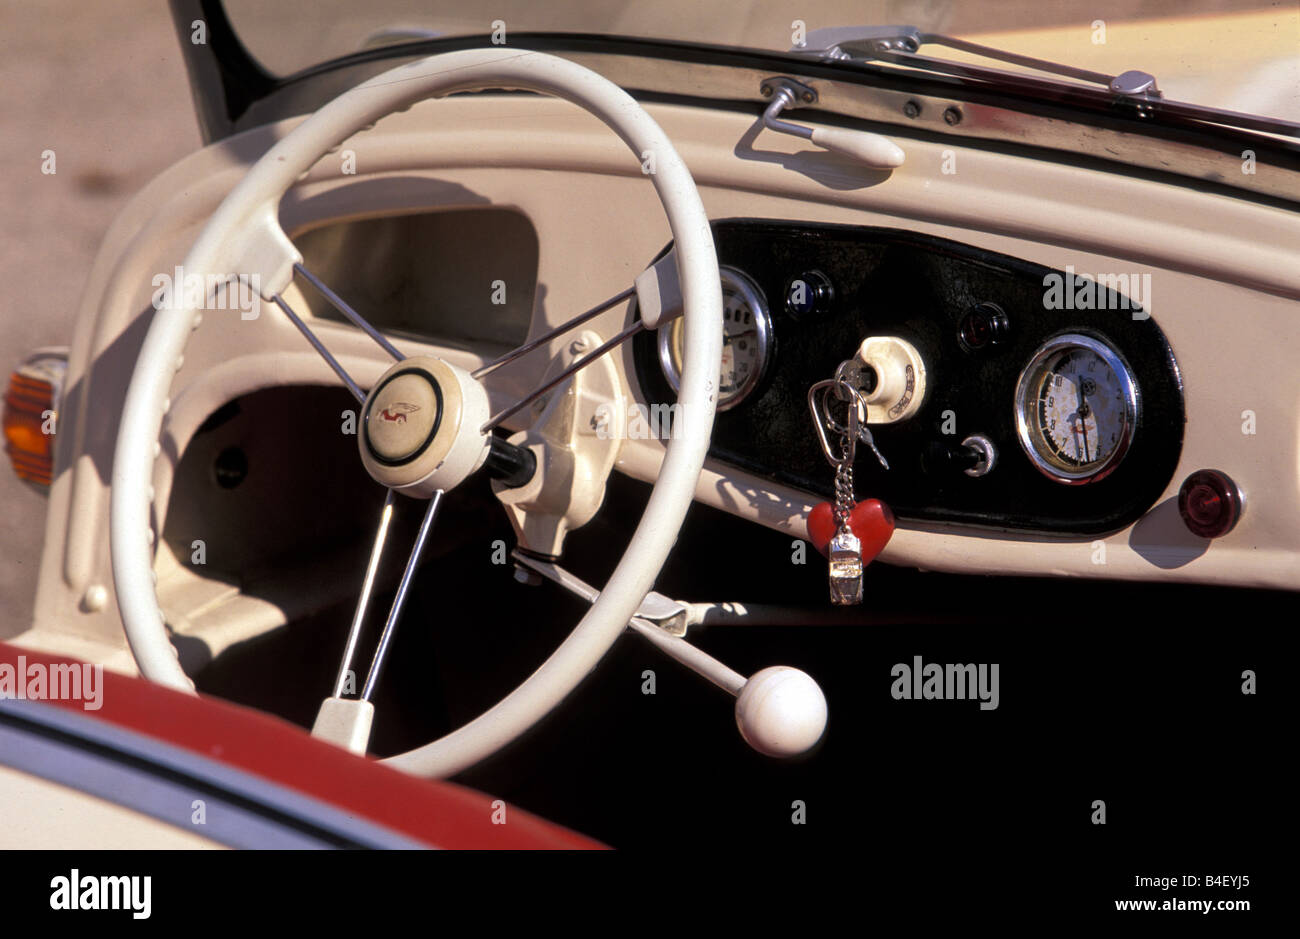 car kleinschnittger vintage car 1950s fifties white interior stock photo royalty free. Black Bedroom Furniture Sets. Home Design Ideas